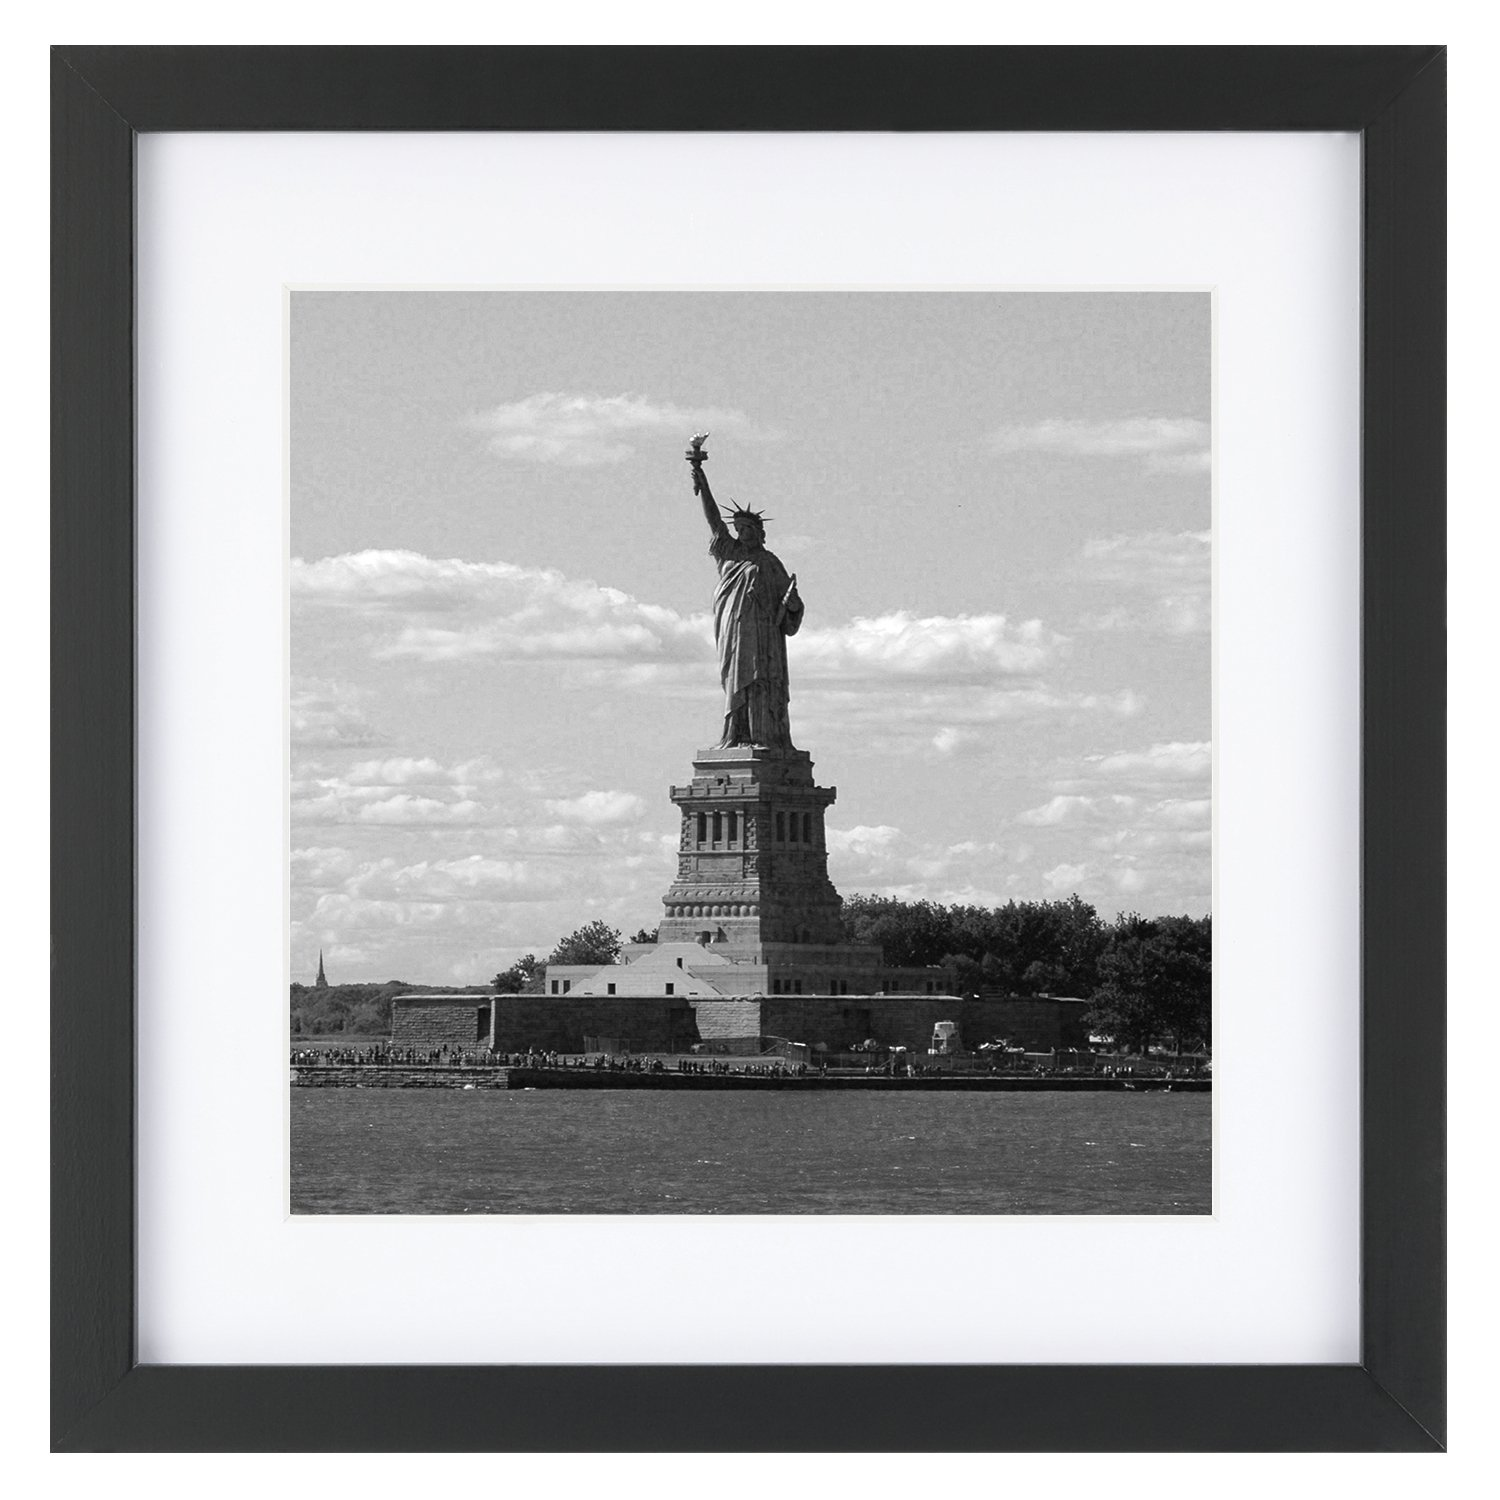 One Wall Tempered Glass 11x11 Picture Frame with Mats for 8x8 Photo, Black Wood Frame for Wall and Tabletop (Mounting Material Included) by One Wall